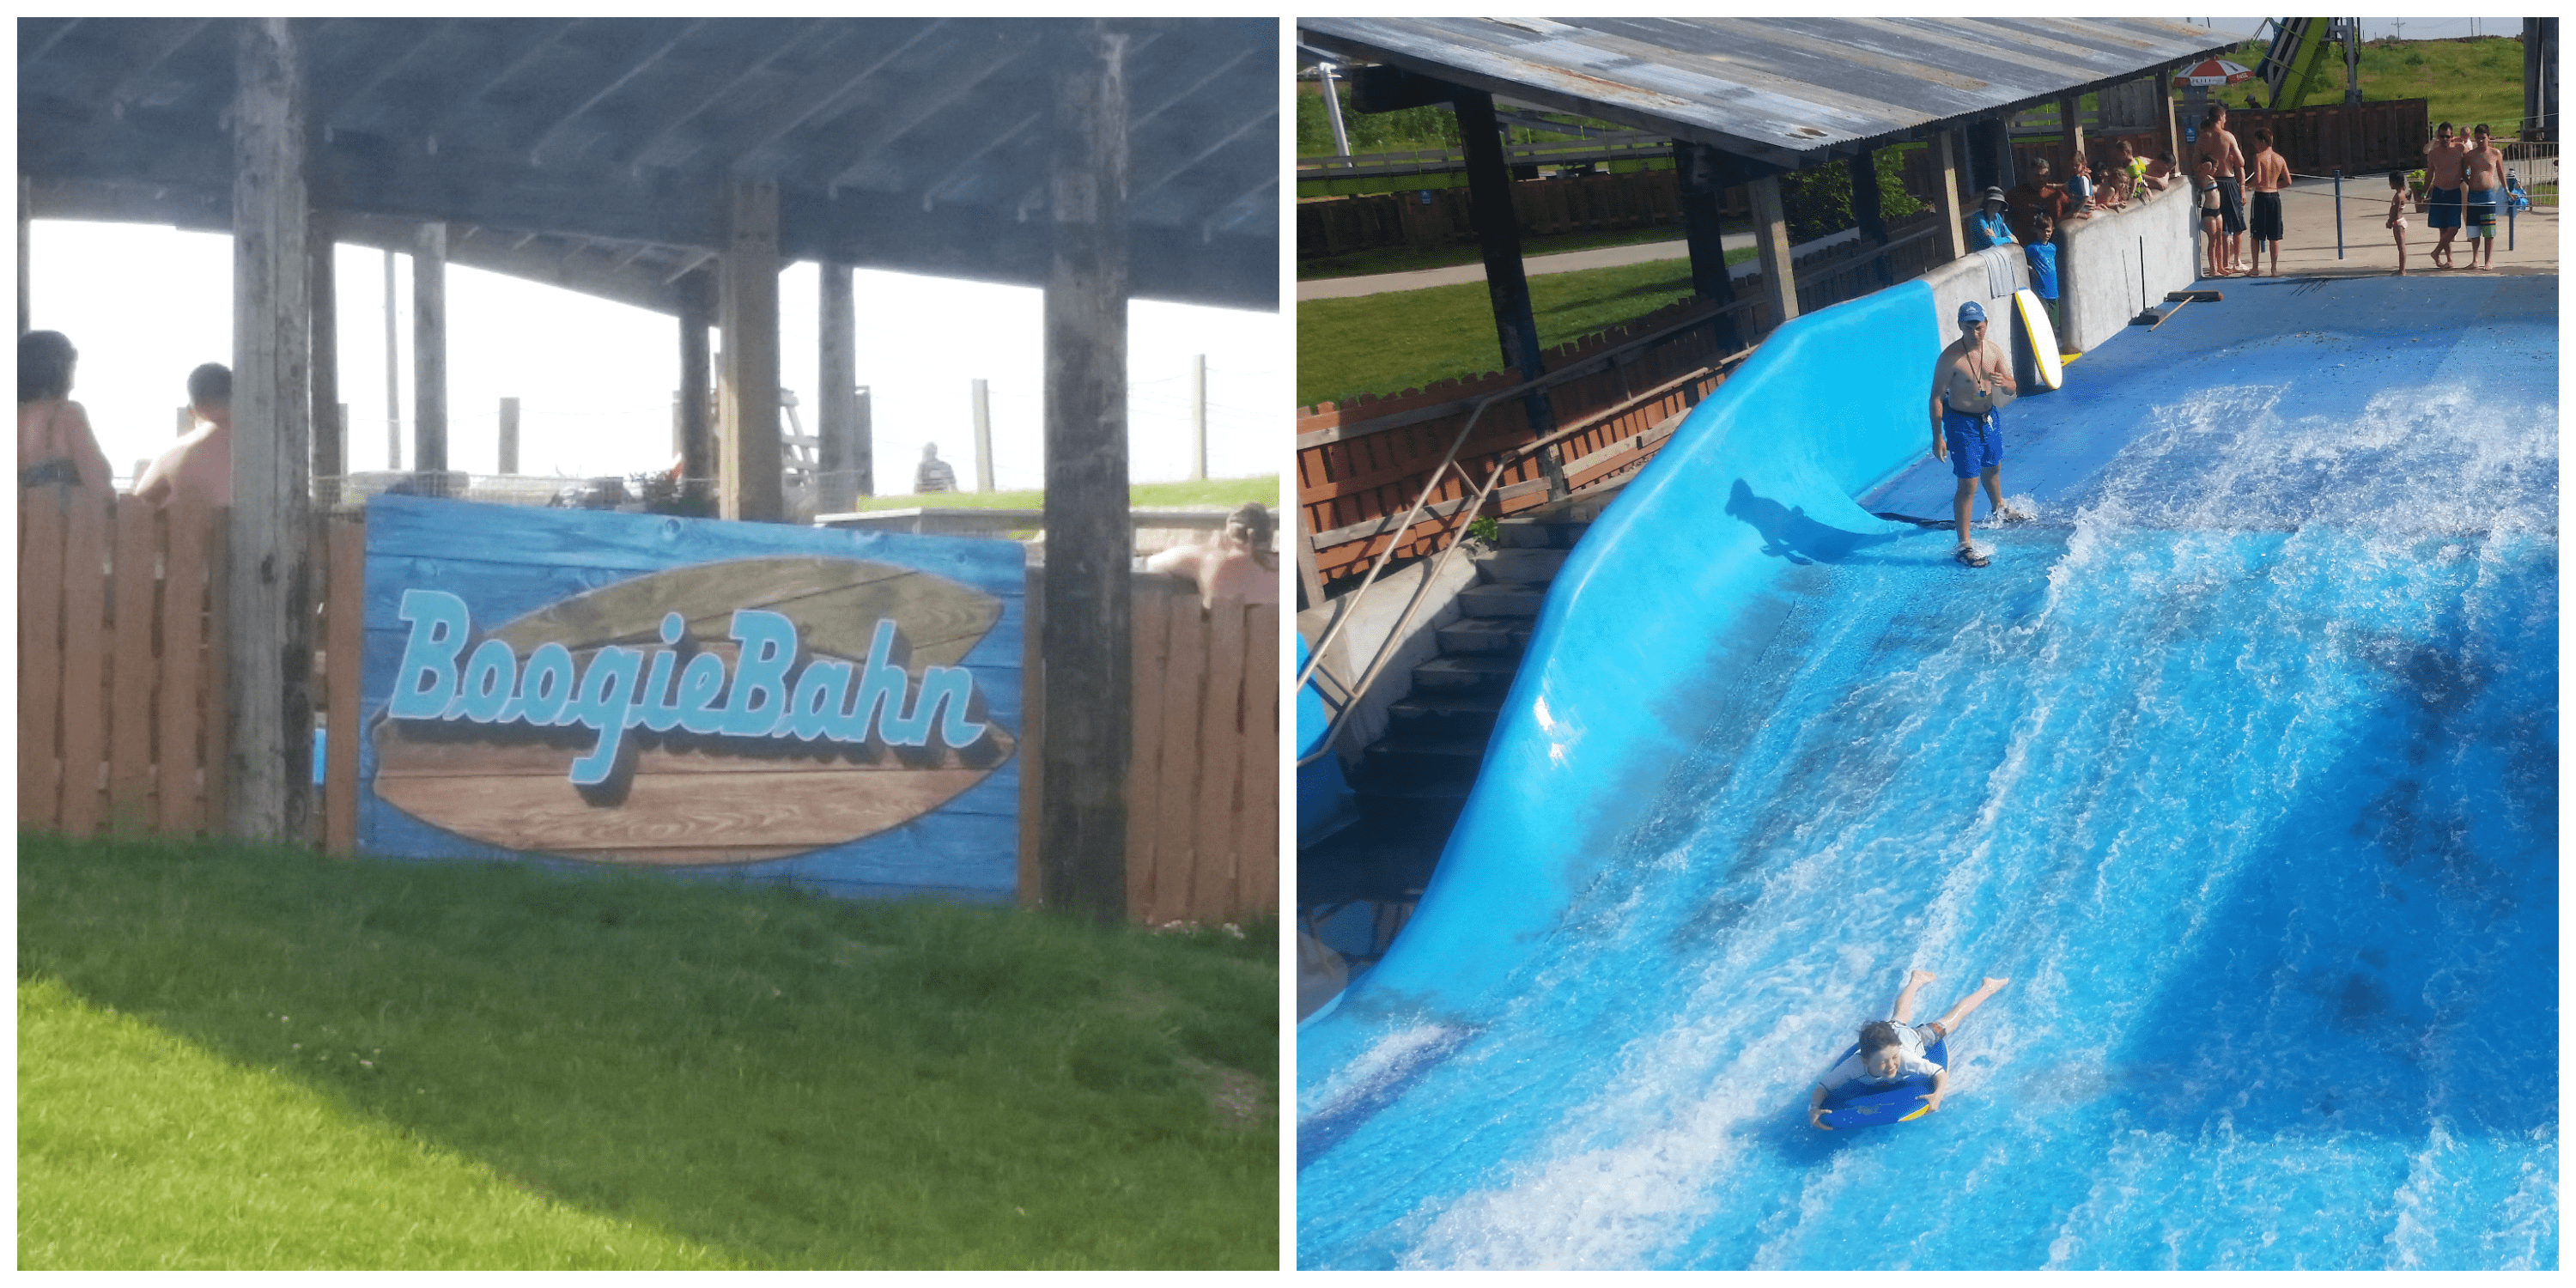 graphic about Schlitterbahn Printable Coupons referred to as Schlitterbahn kc discount codes promo codes